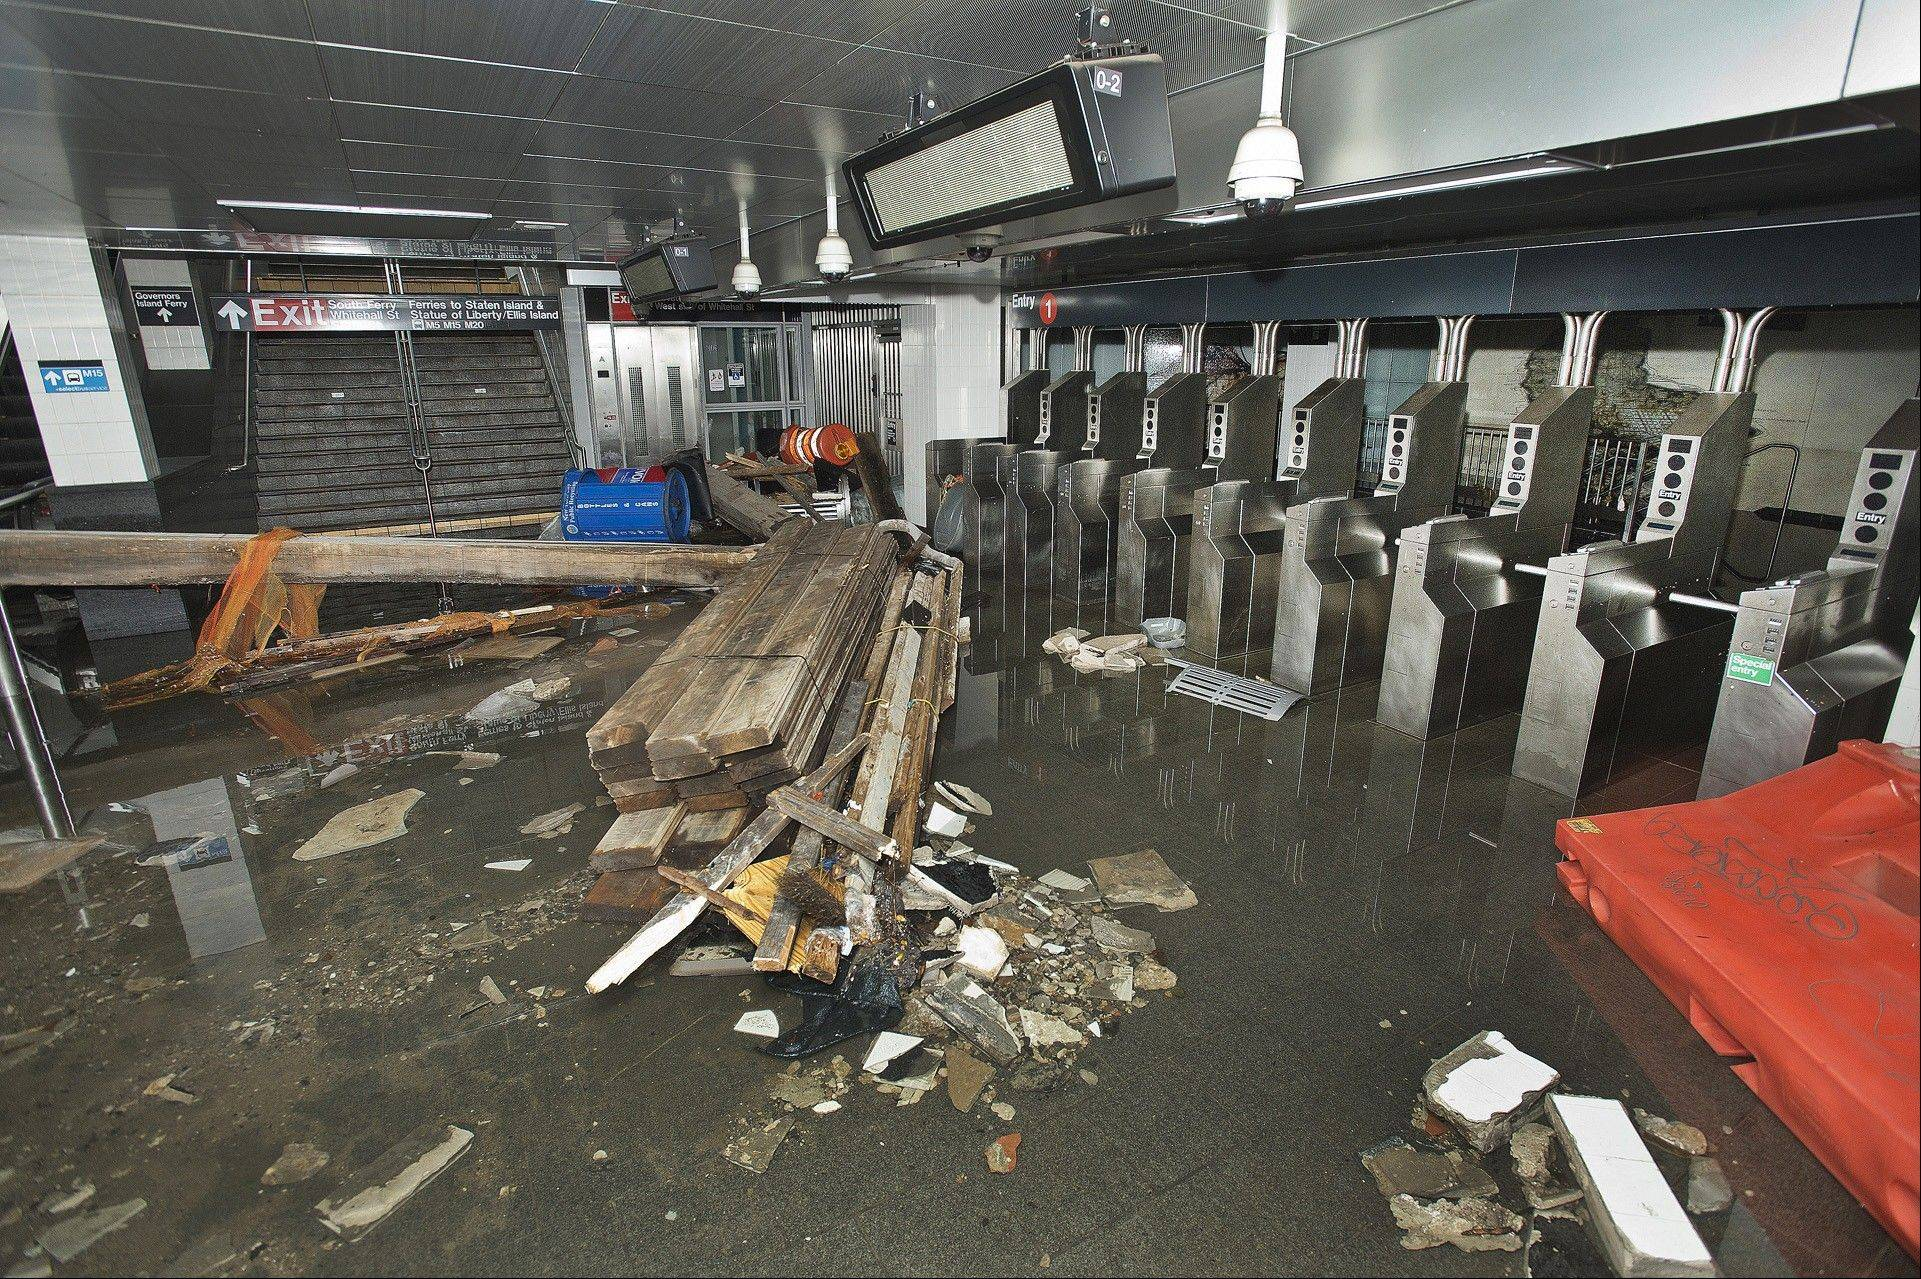 The South Ferry subway station in New York City is filled with seawater and debris from Superstorm Sandy.